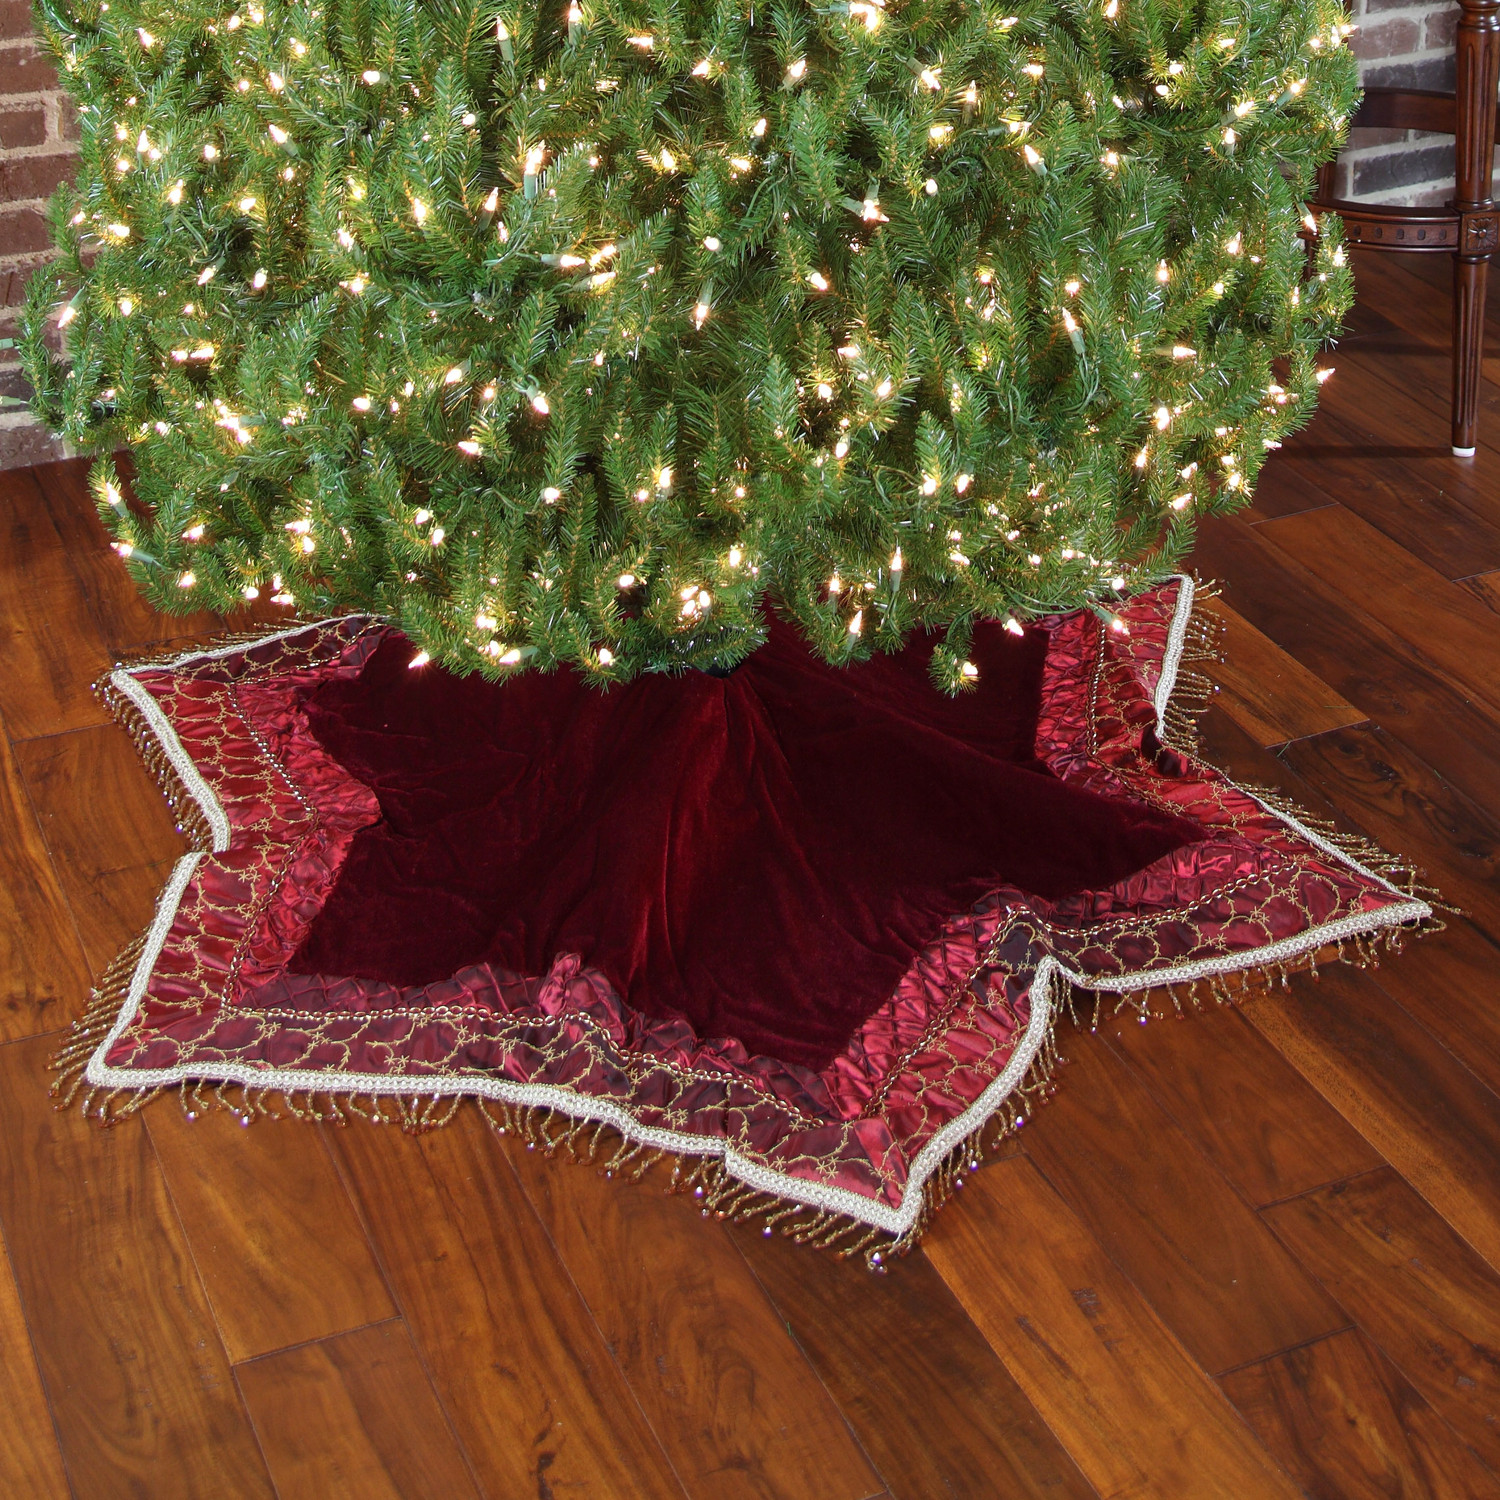 Burgundy-Tassle-Christmas-Tree-Skirt-